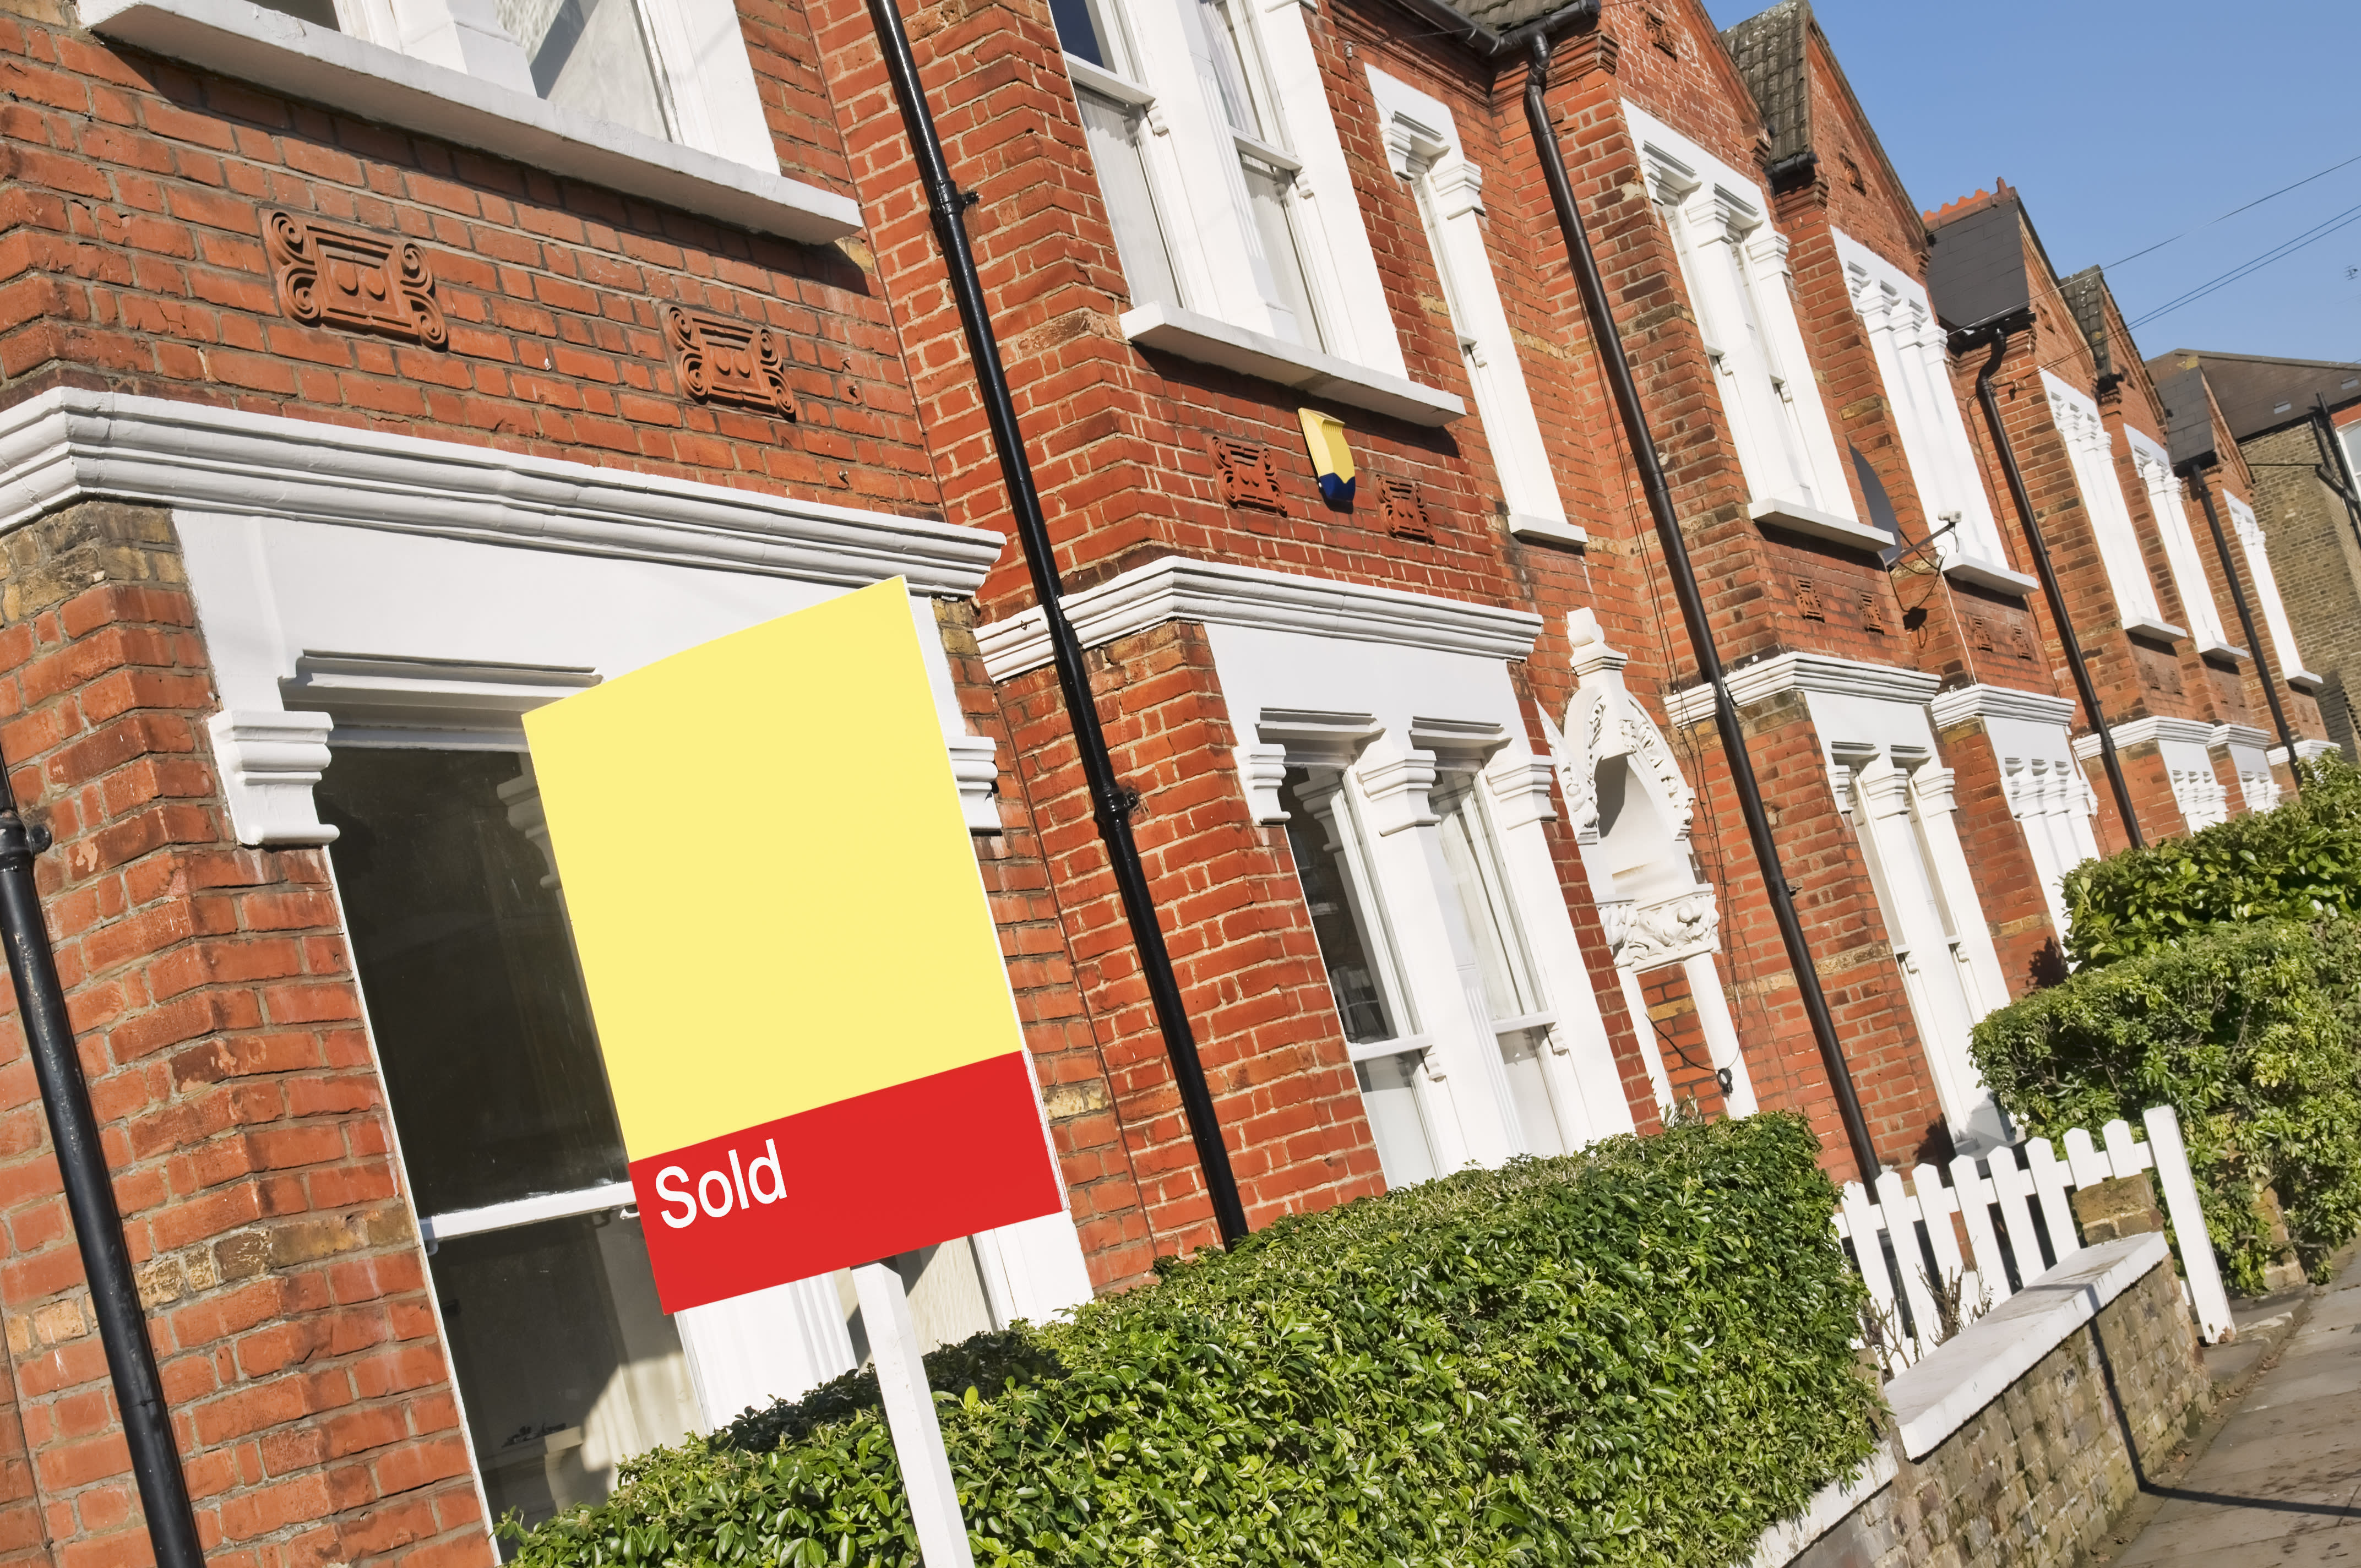 Home ownership among young people rises for the first time in a decade